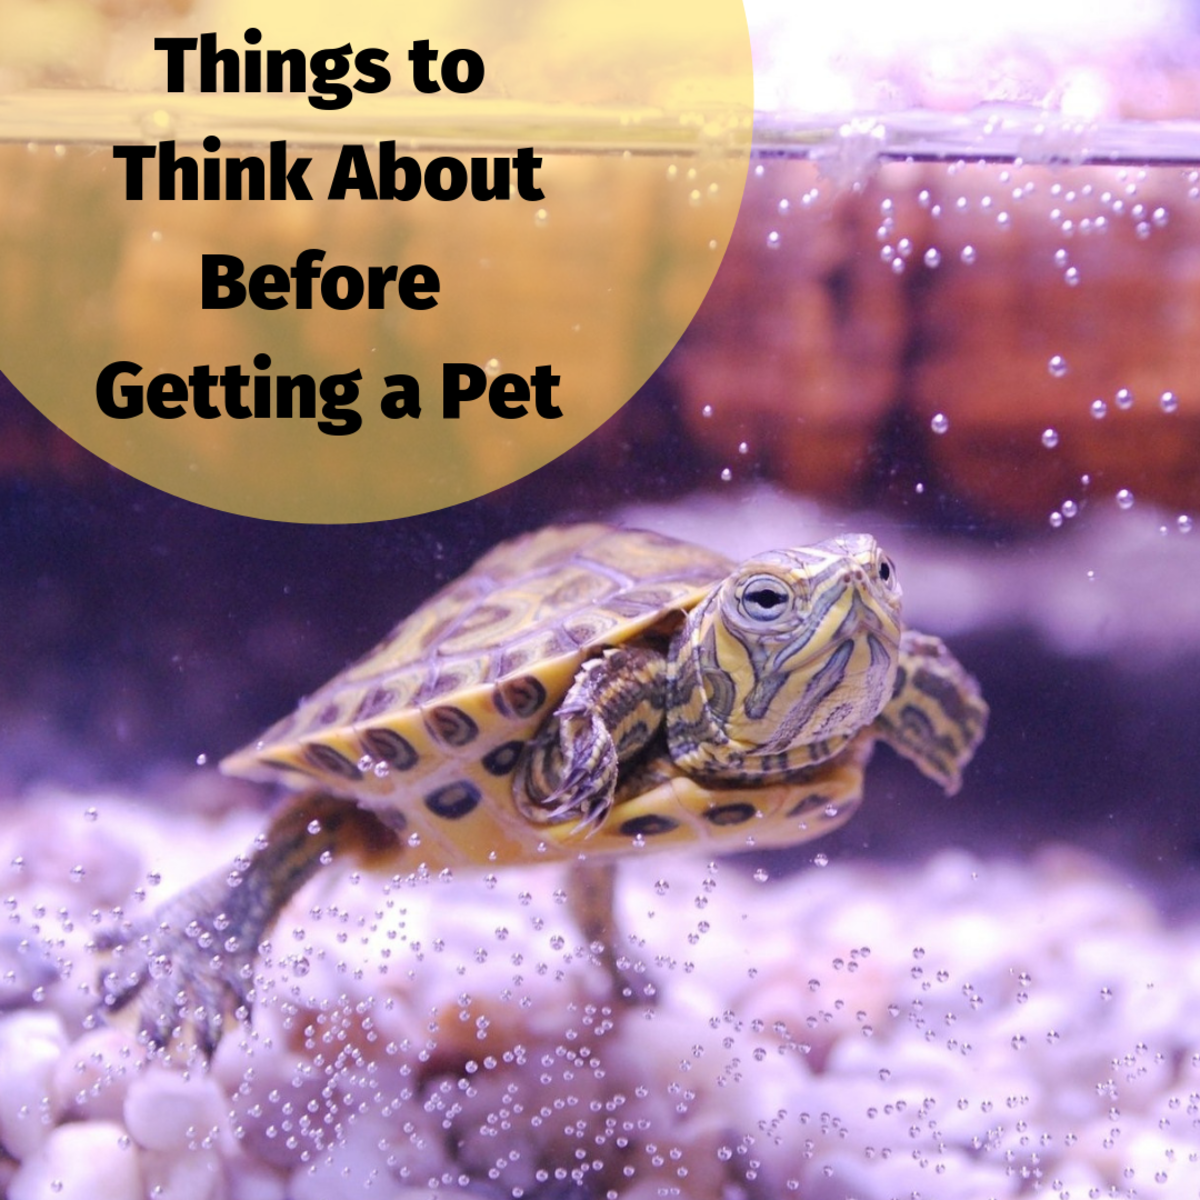 Getting a pet requires some careful planning and research beforehand.